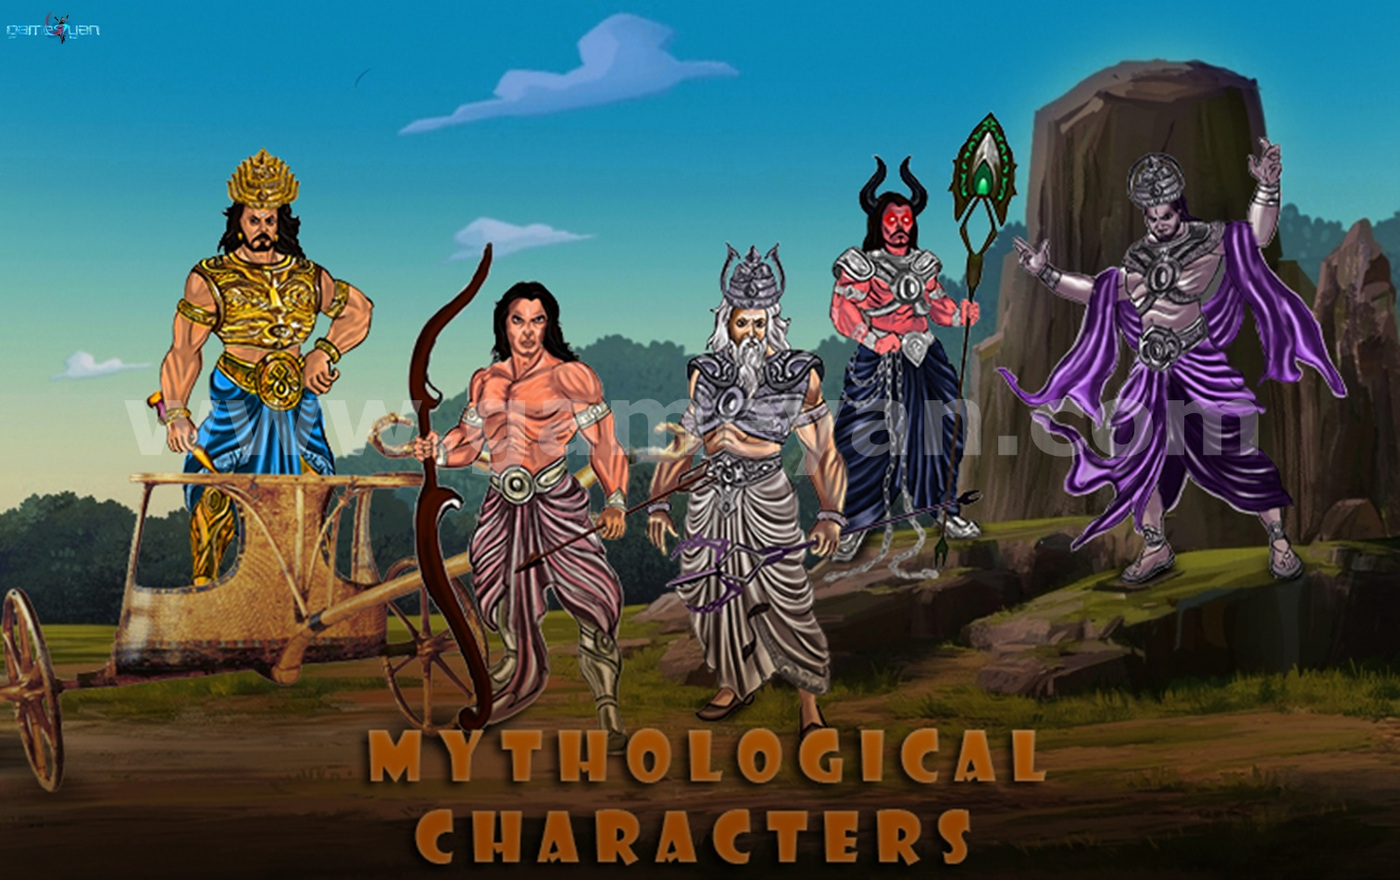 GameYan Studio - Mythological Characters Modeling Design by Animation Production Companies